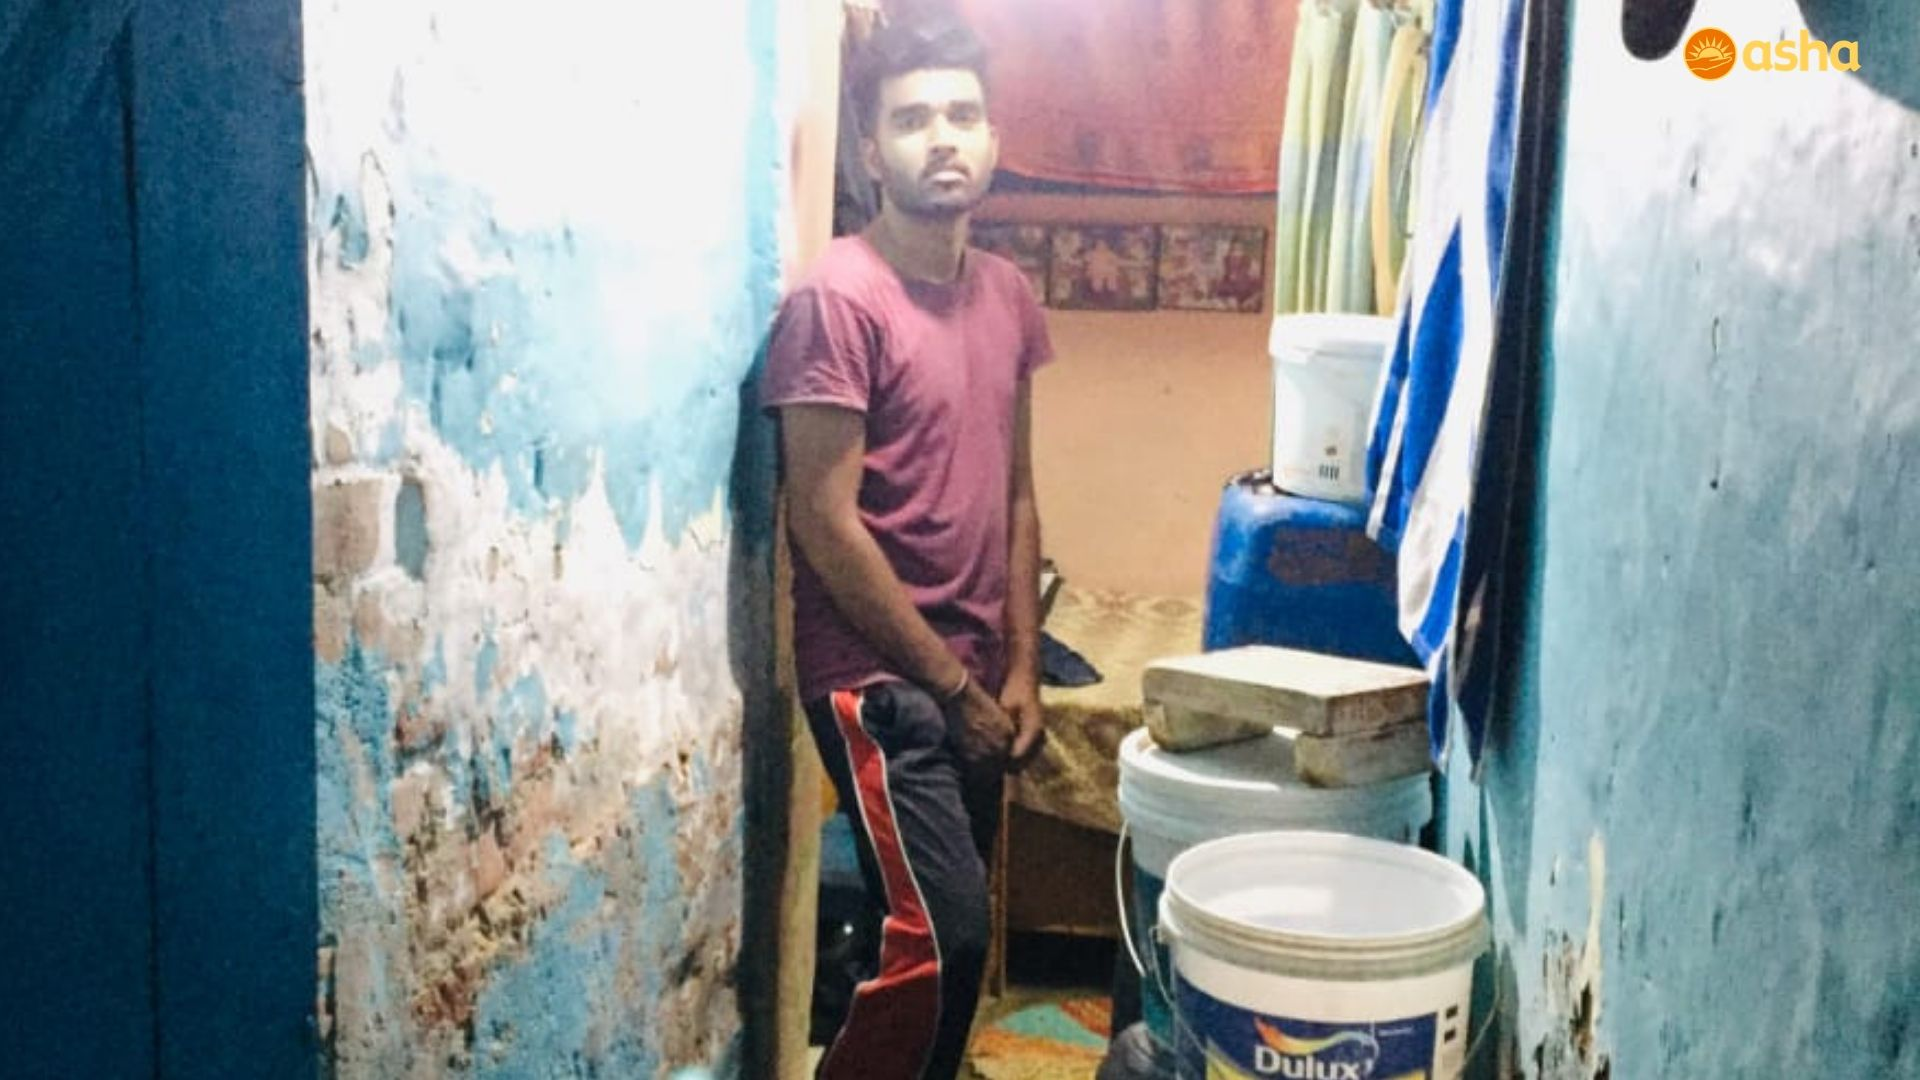 Amritesh in his shanty at Asha's Kusumpur slum community